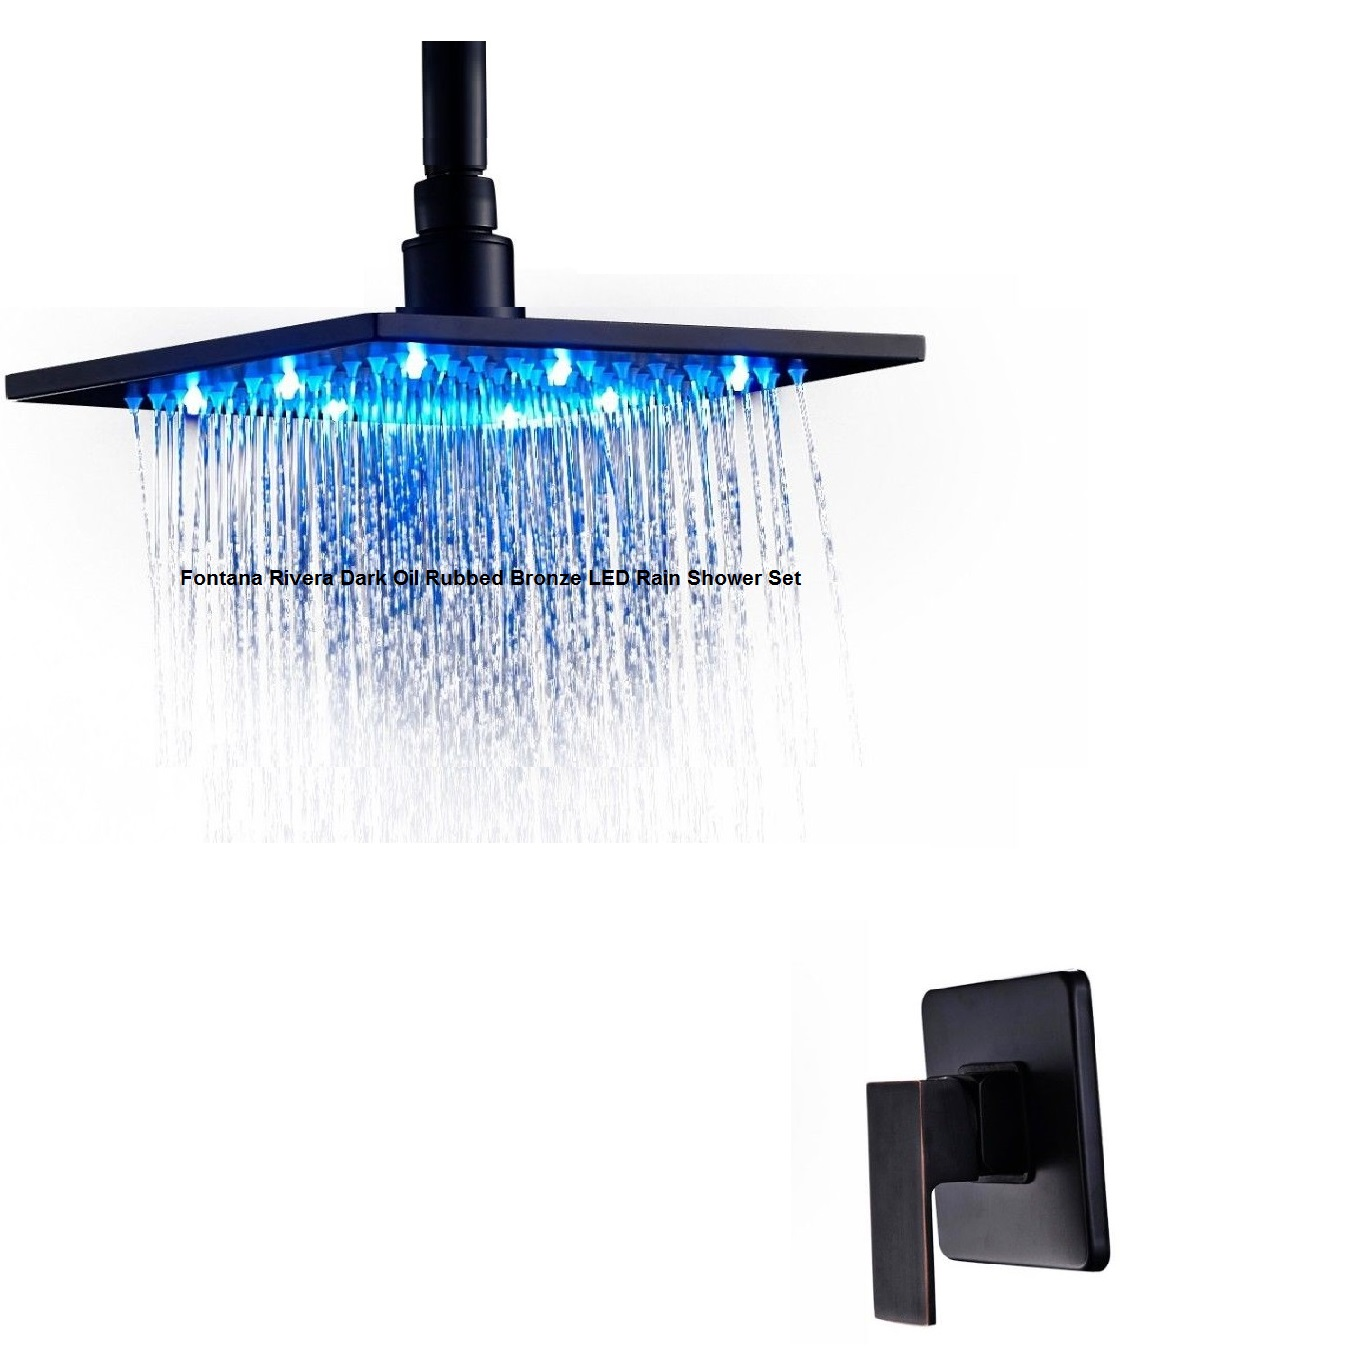 DETAILS FONTANA RIVERADARKOIL RUBBED BRONZEBATHROOMRAIN SHOWER - Dark bronze bathroom faucets